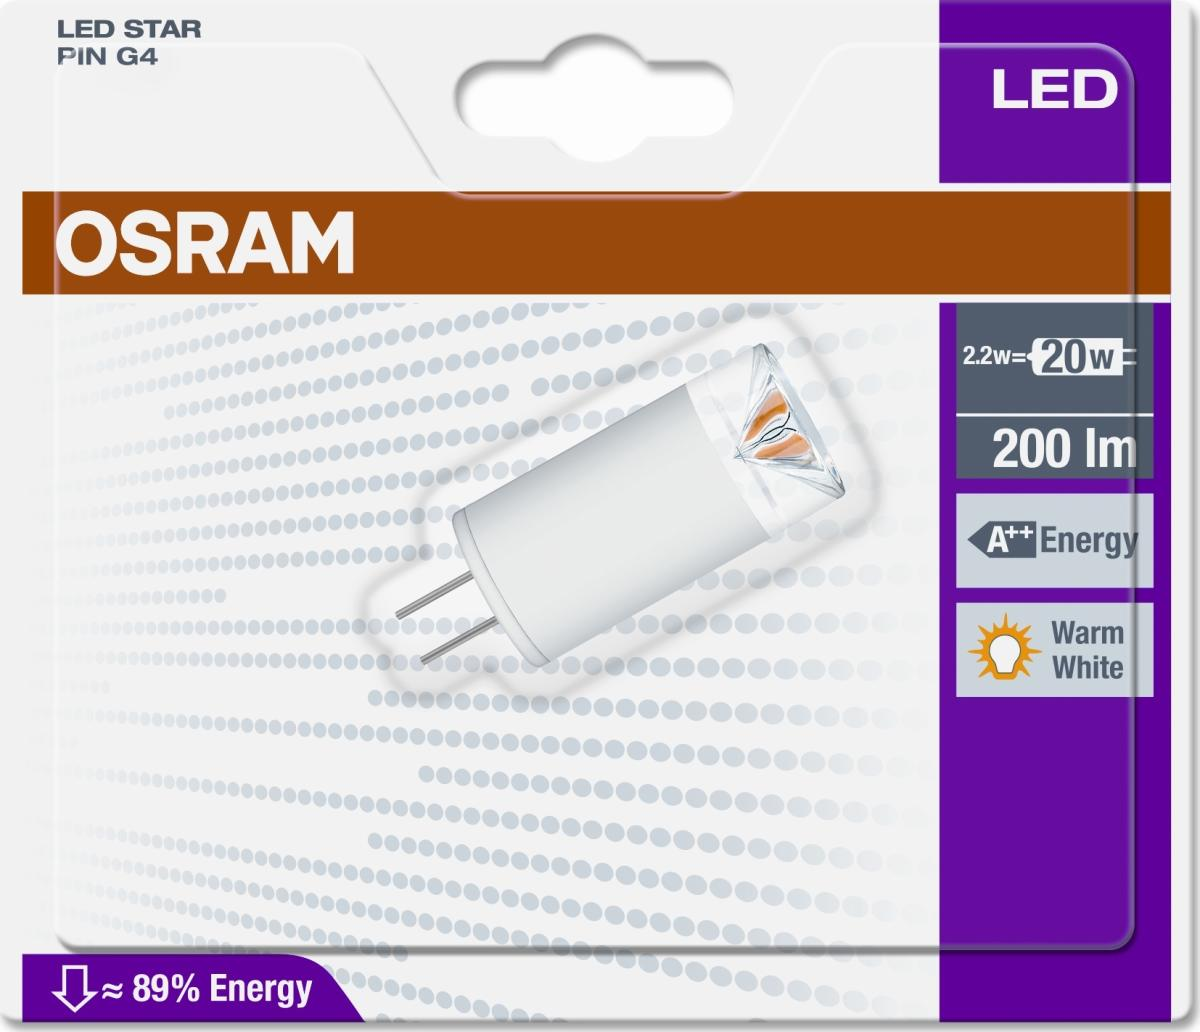 osram led specialp re g4 1 7w 20w k b til fast lav pris lomax a s. Black Bedroom Furniture Sets. Home Design Ideas